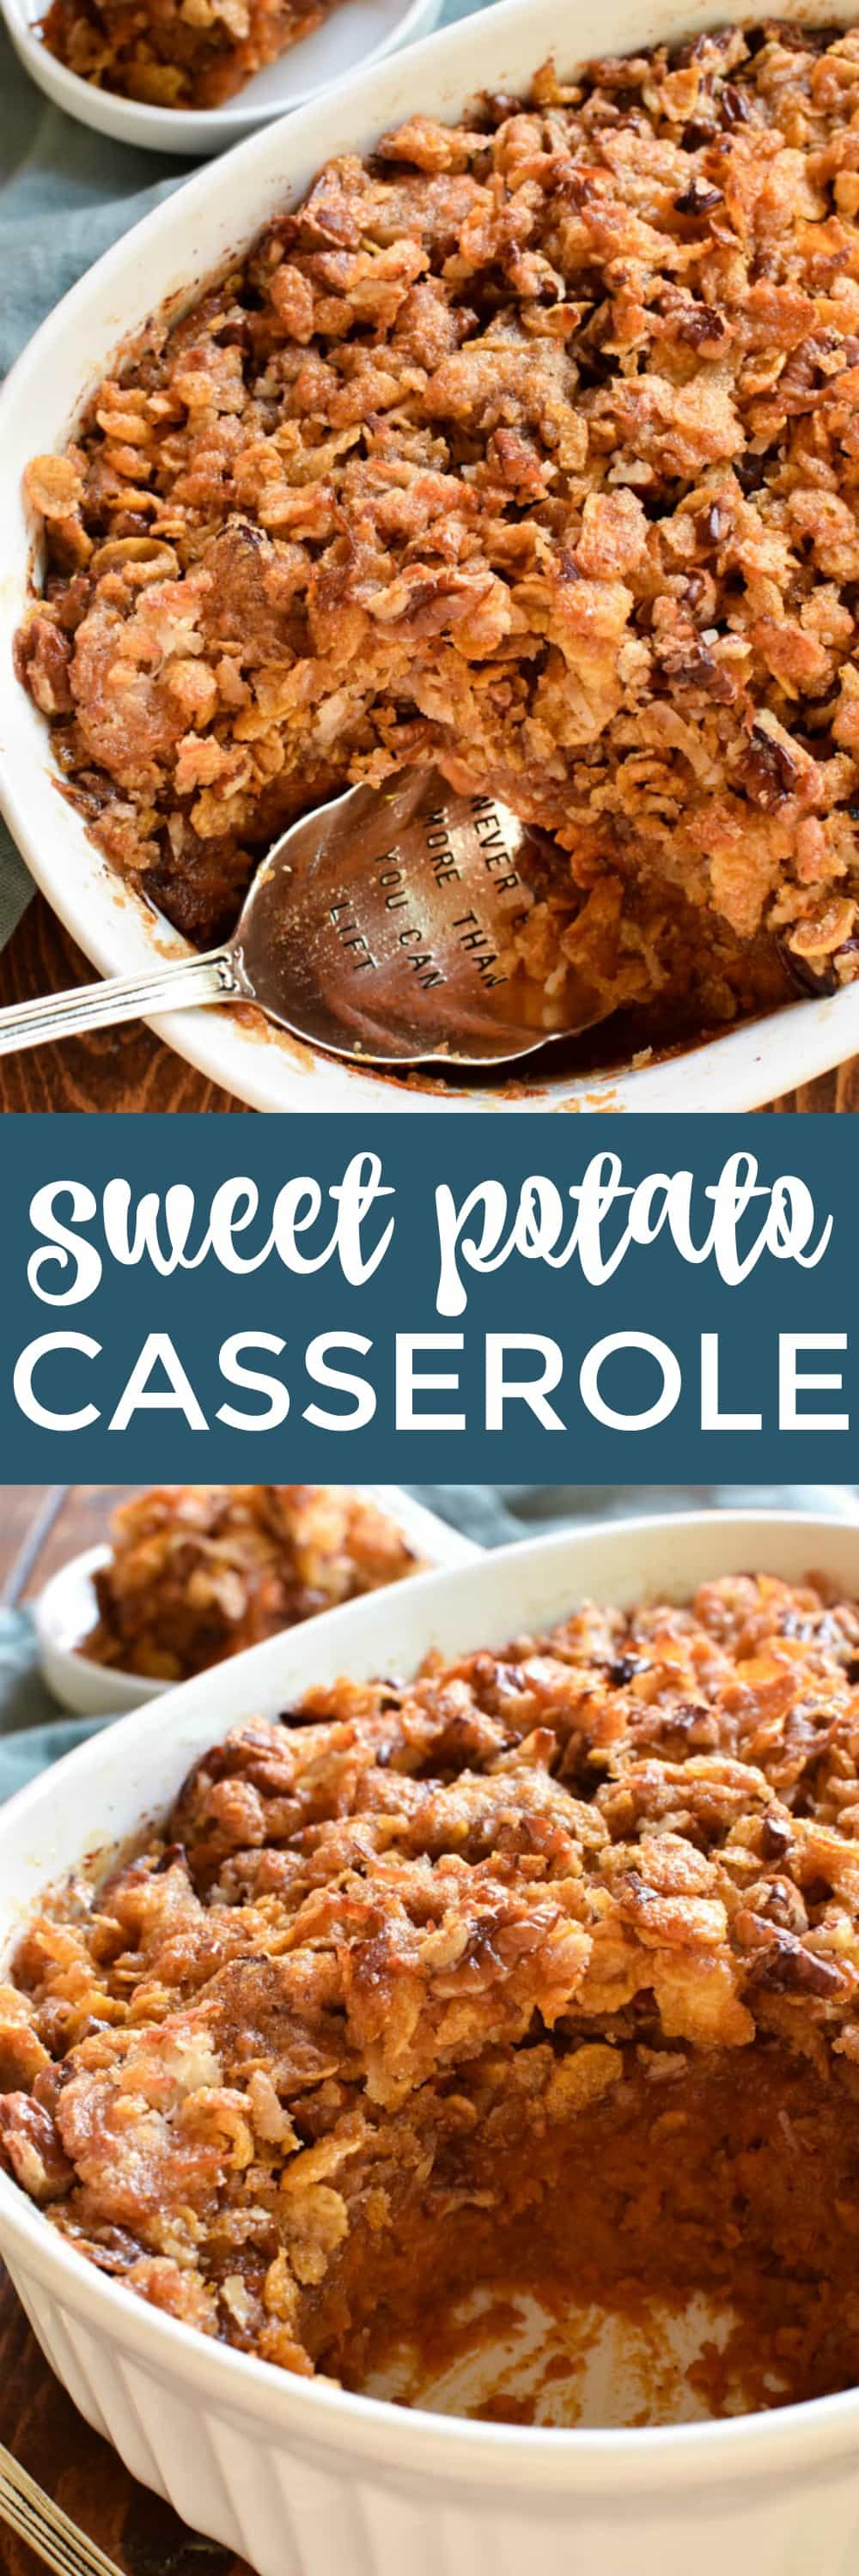 The ULTIMATE Sweet Potato Casserole! Loaded with fresh sweet potatoes, brown sugar, pumpkin pie spice, chopped pecans, and  a special secret ingredient, this casserole is crunchy, creamy, sweet, and so delicious. Perfect for all your holiday celebrations and easy to make in advance, so it's celebration-ready when you are. Whether you're a long time sweet potato lover or new to the game, you're going to fall in love with this recipe. It has the most amazing flavor and the BEST brown sugar pecan topping. Sure to become a new holiday favorite!